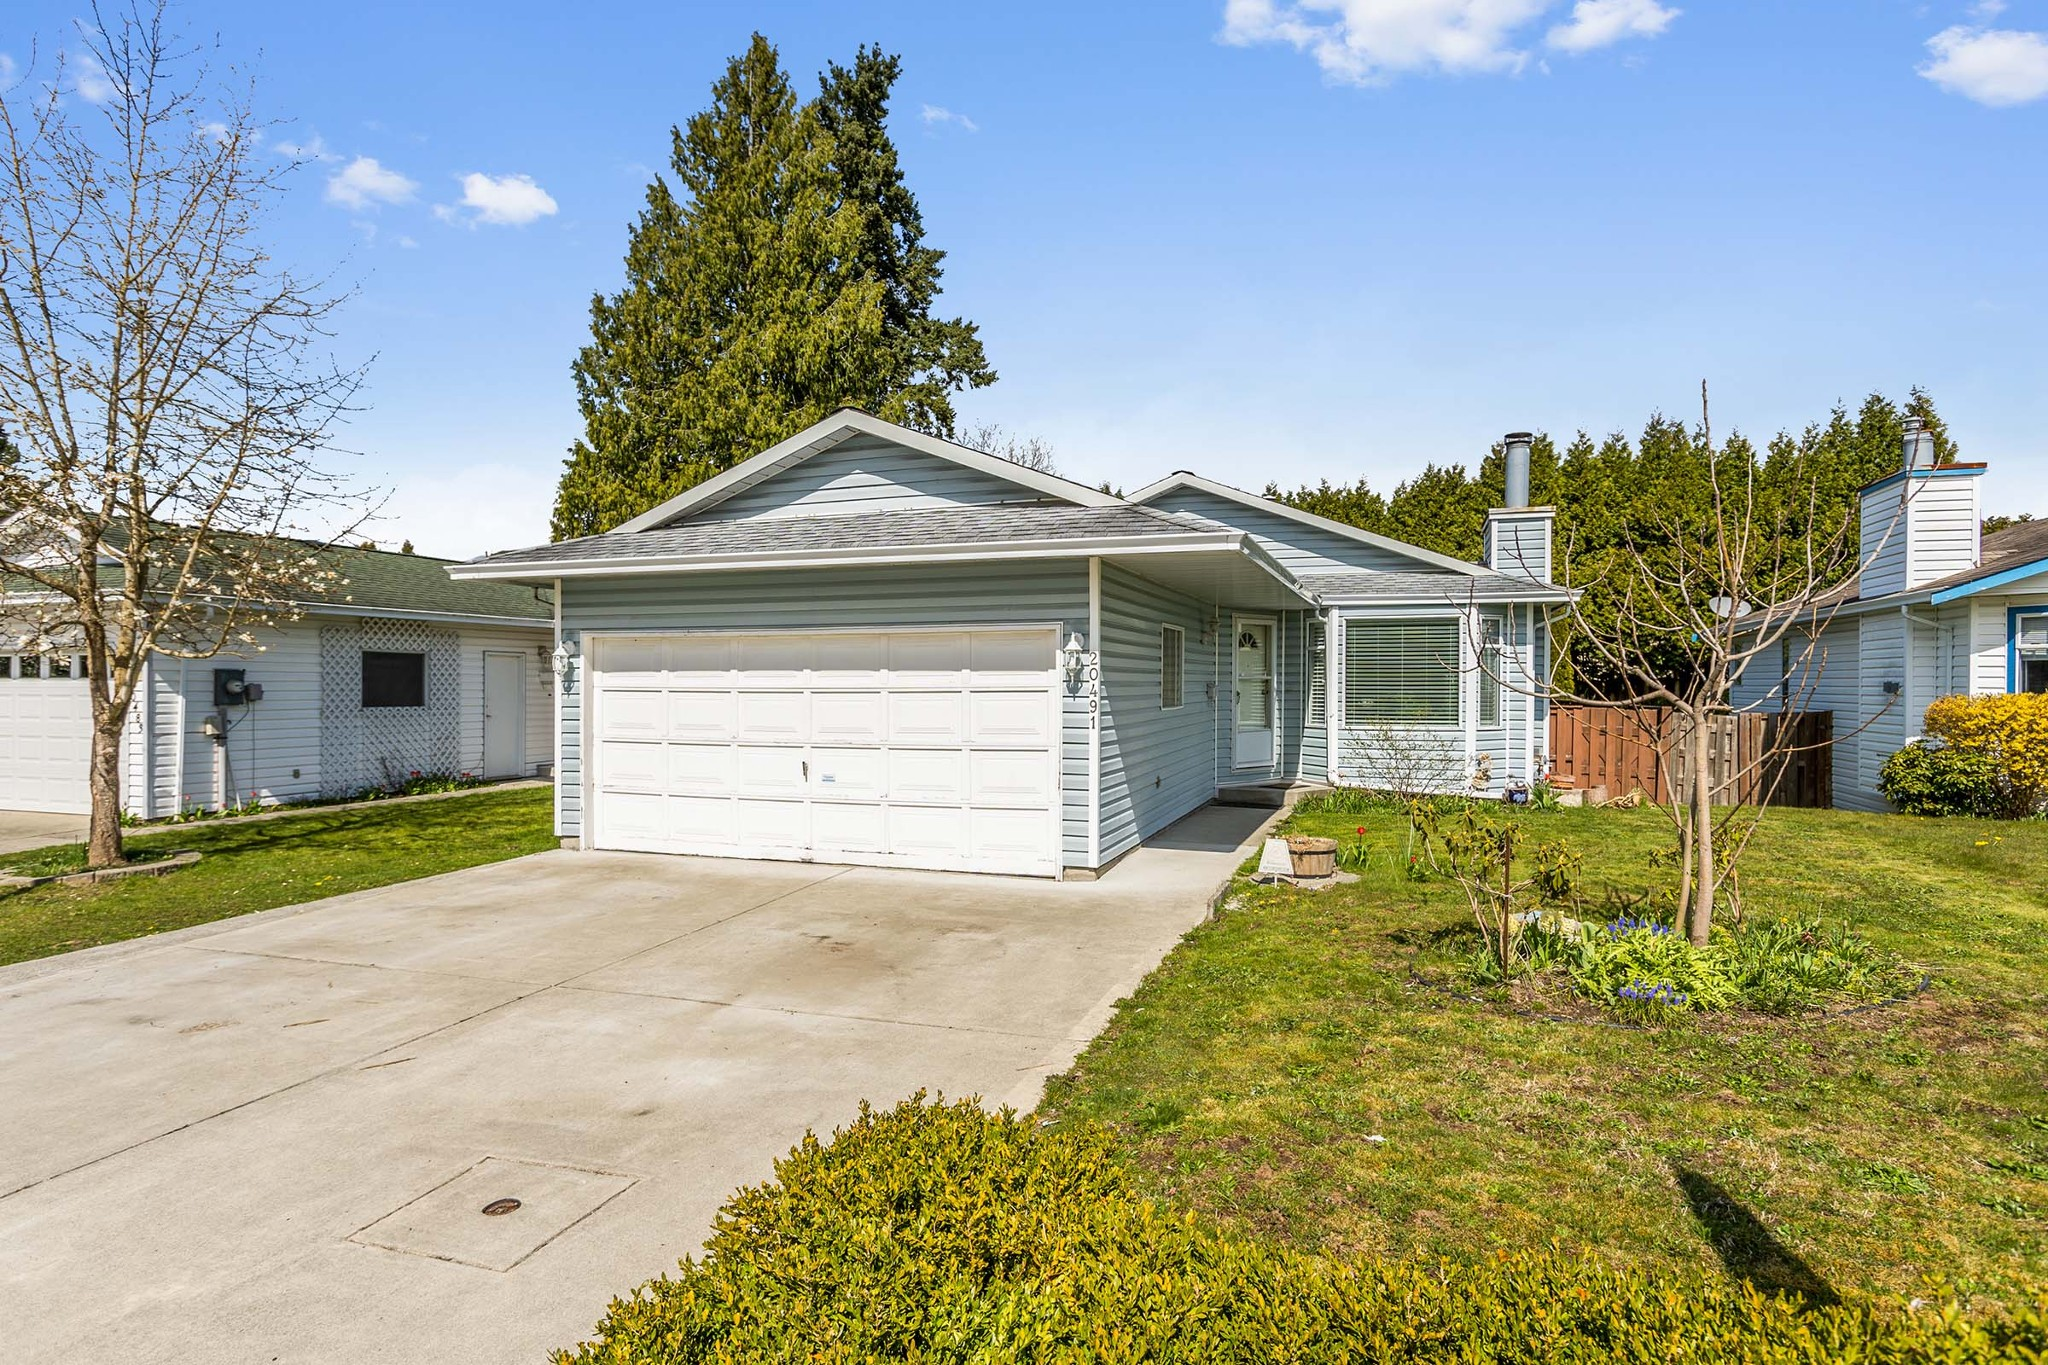 FEATURED LISTING: 20491 118 Avenue Maple Ridge